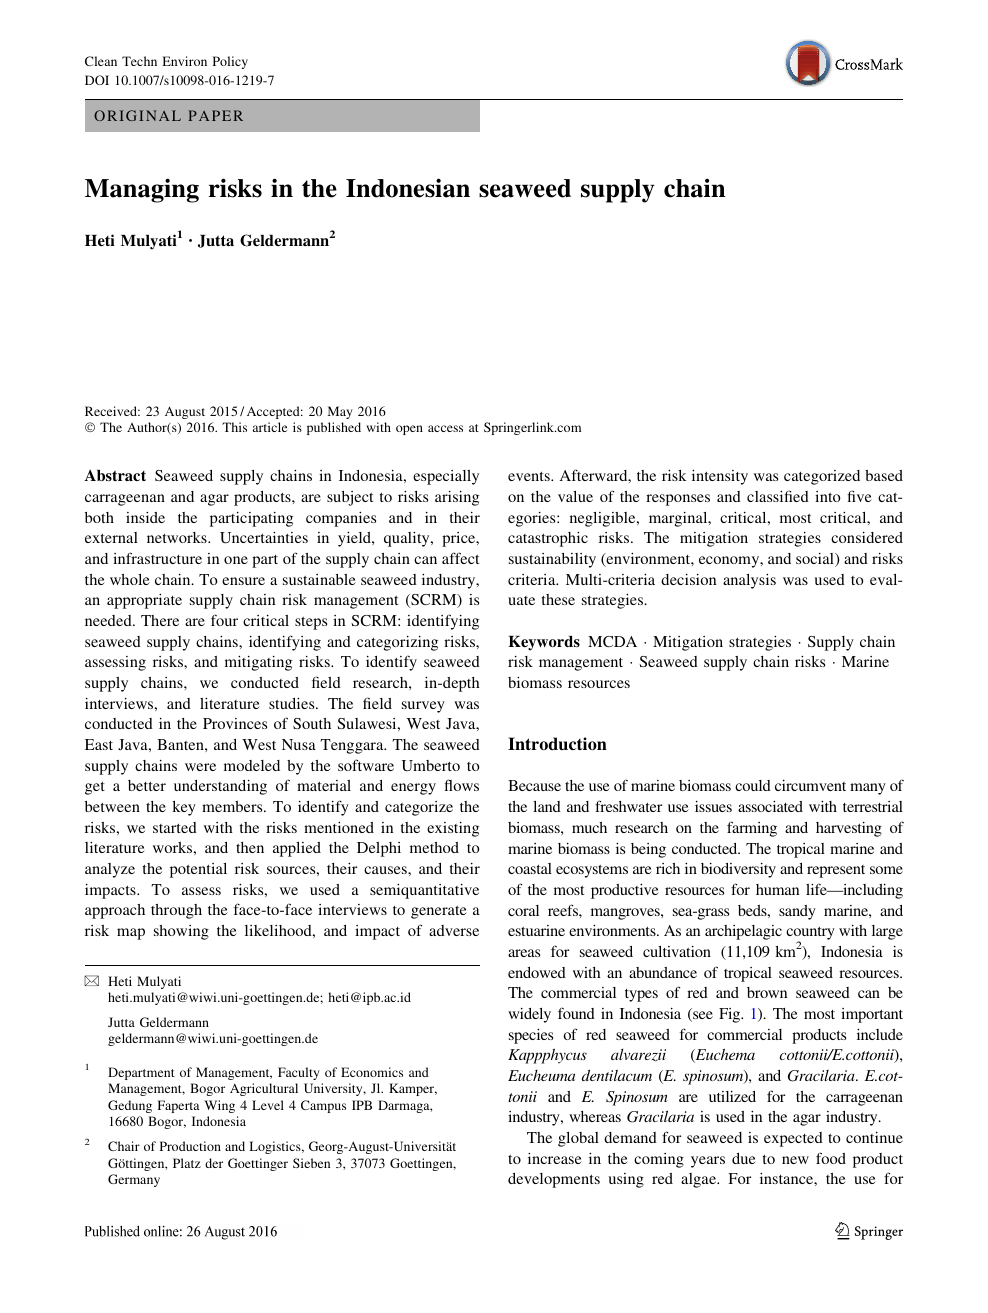 Managing risks in the Indonesian seaweed supply chain